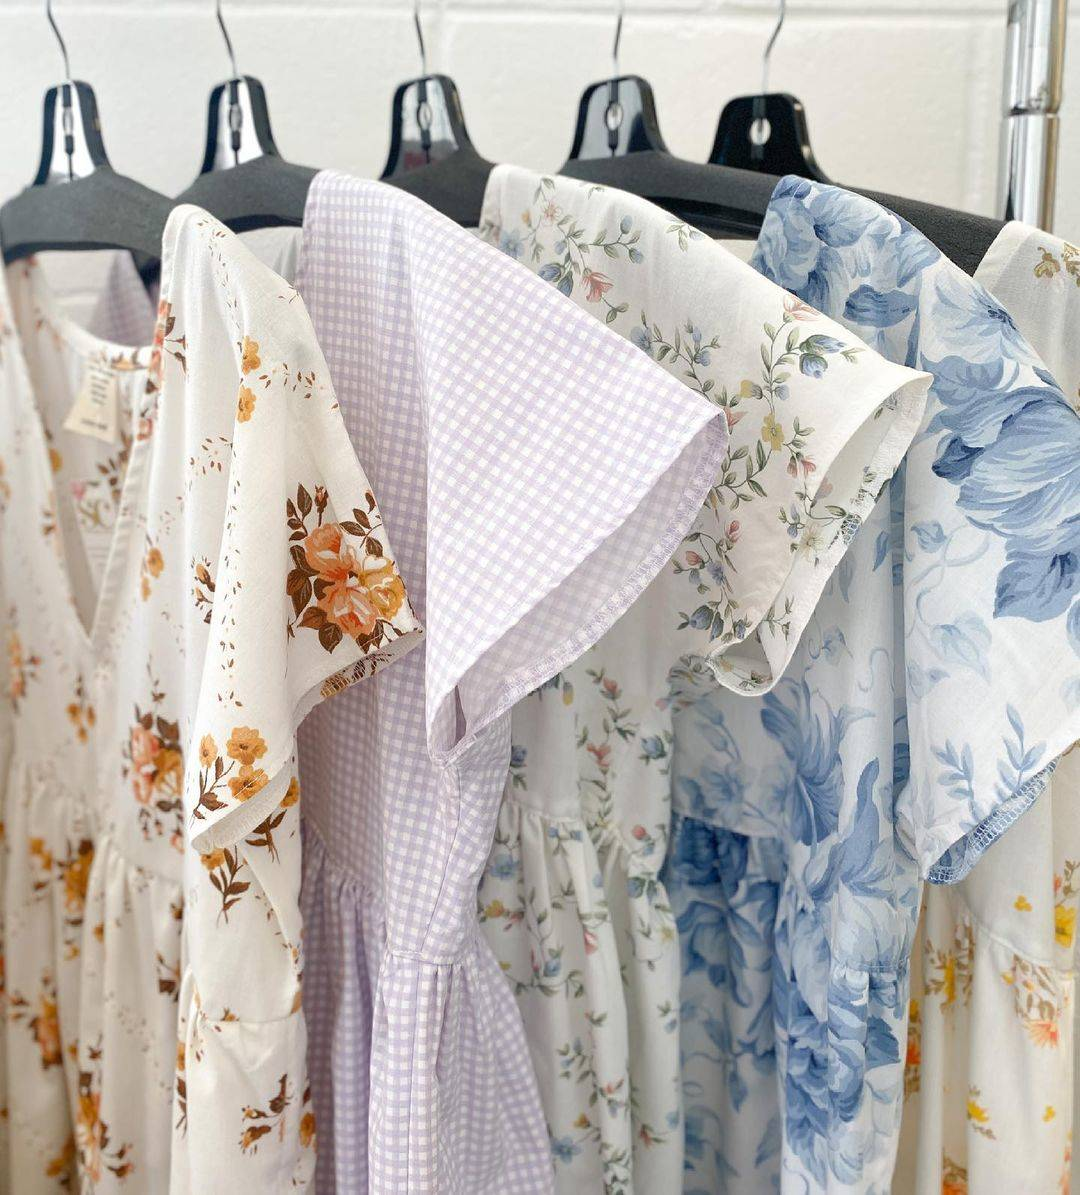 Several pastel-colored shift dresses hang on a clothing rack.